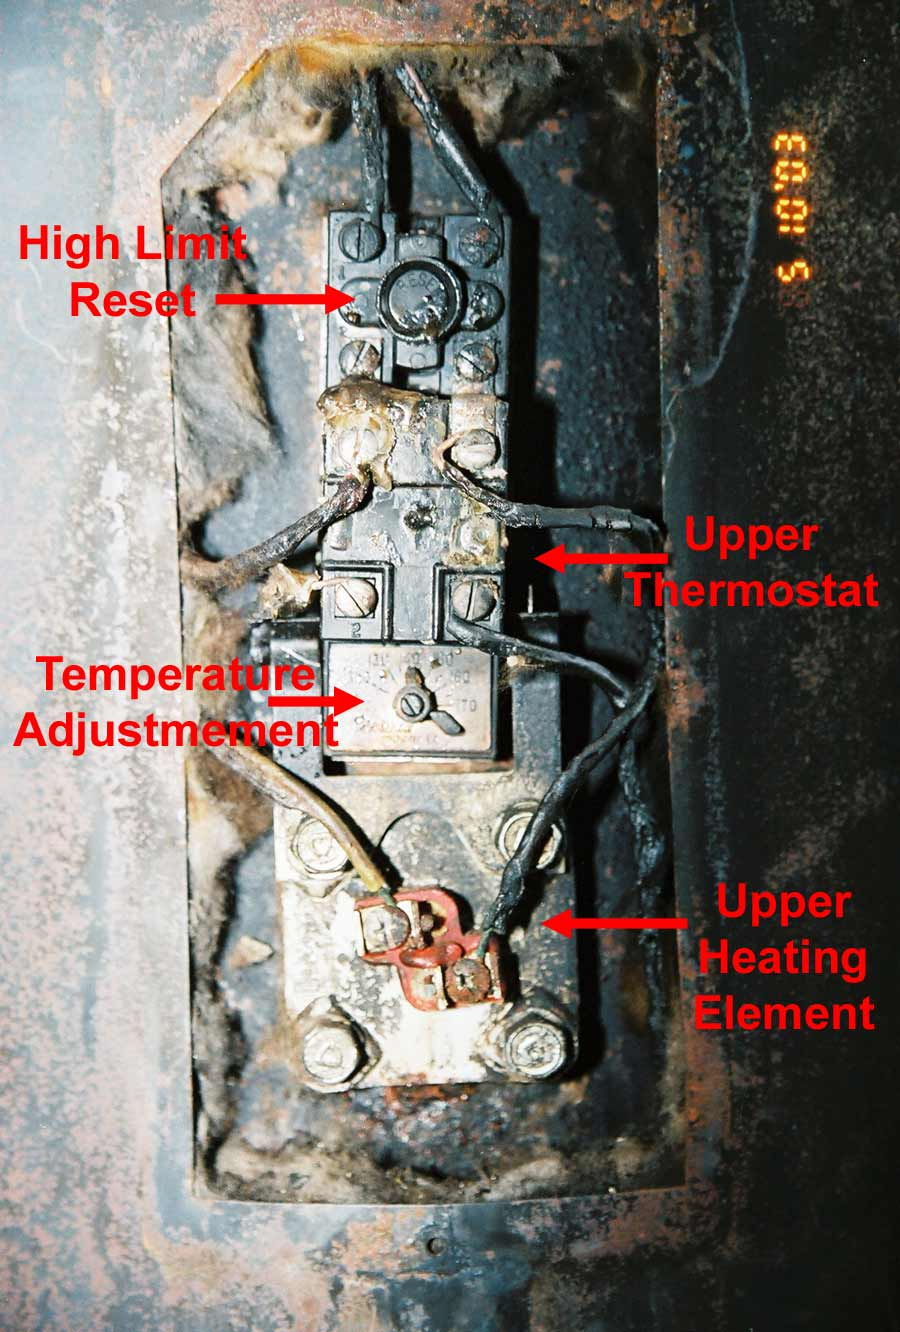 hight resolution of hot water tank upper controls